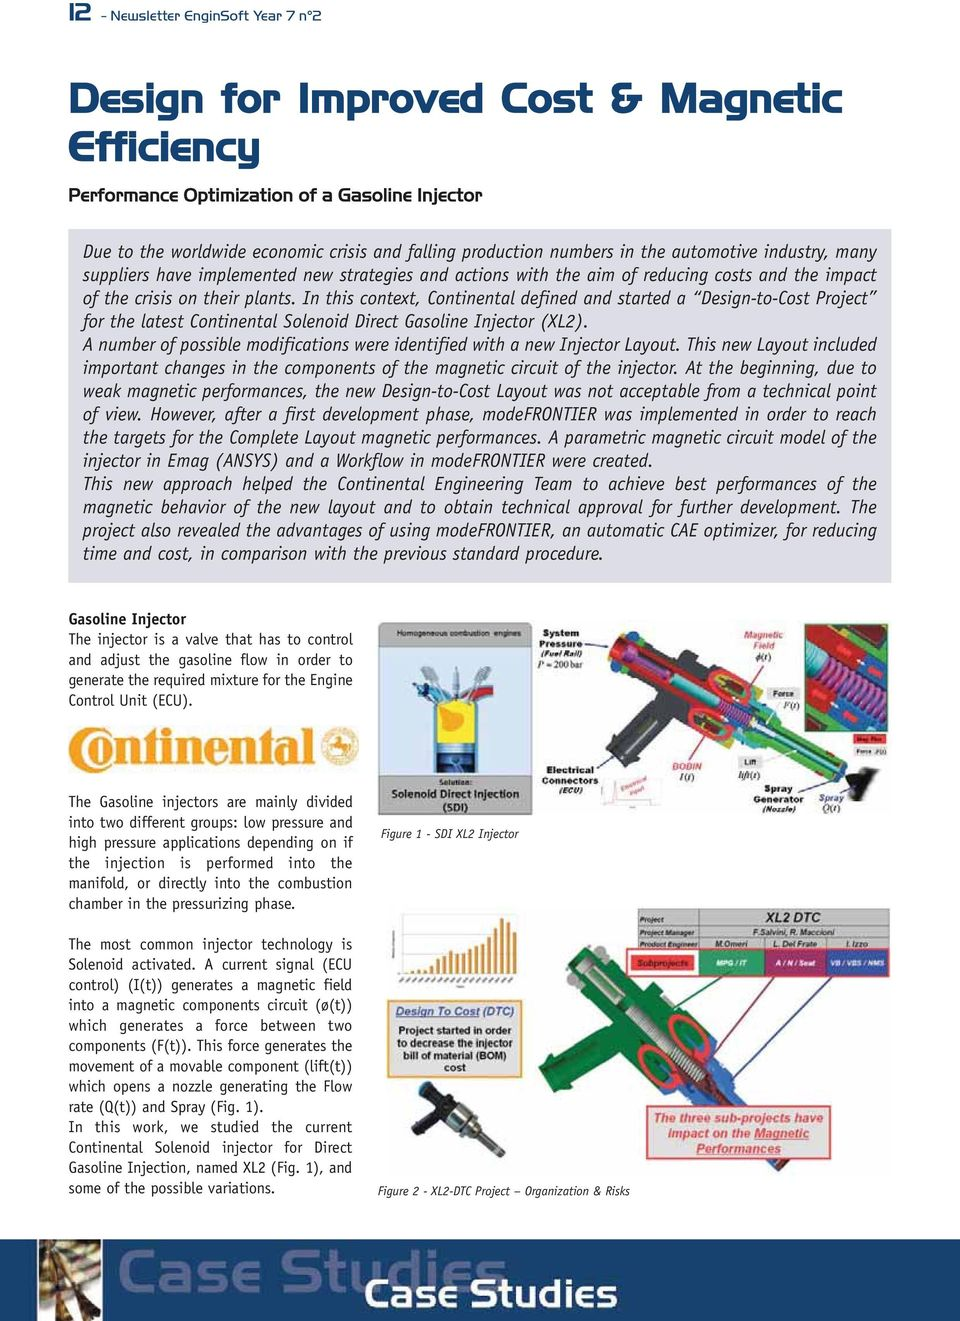 In this context, Continental defined and started a Design-to-Cost Project for the latest Continental Solenoid Direct Gasoline Injector (XL2).